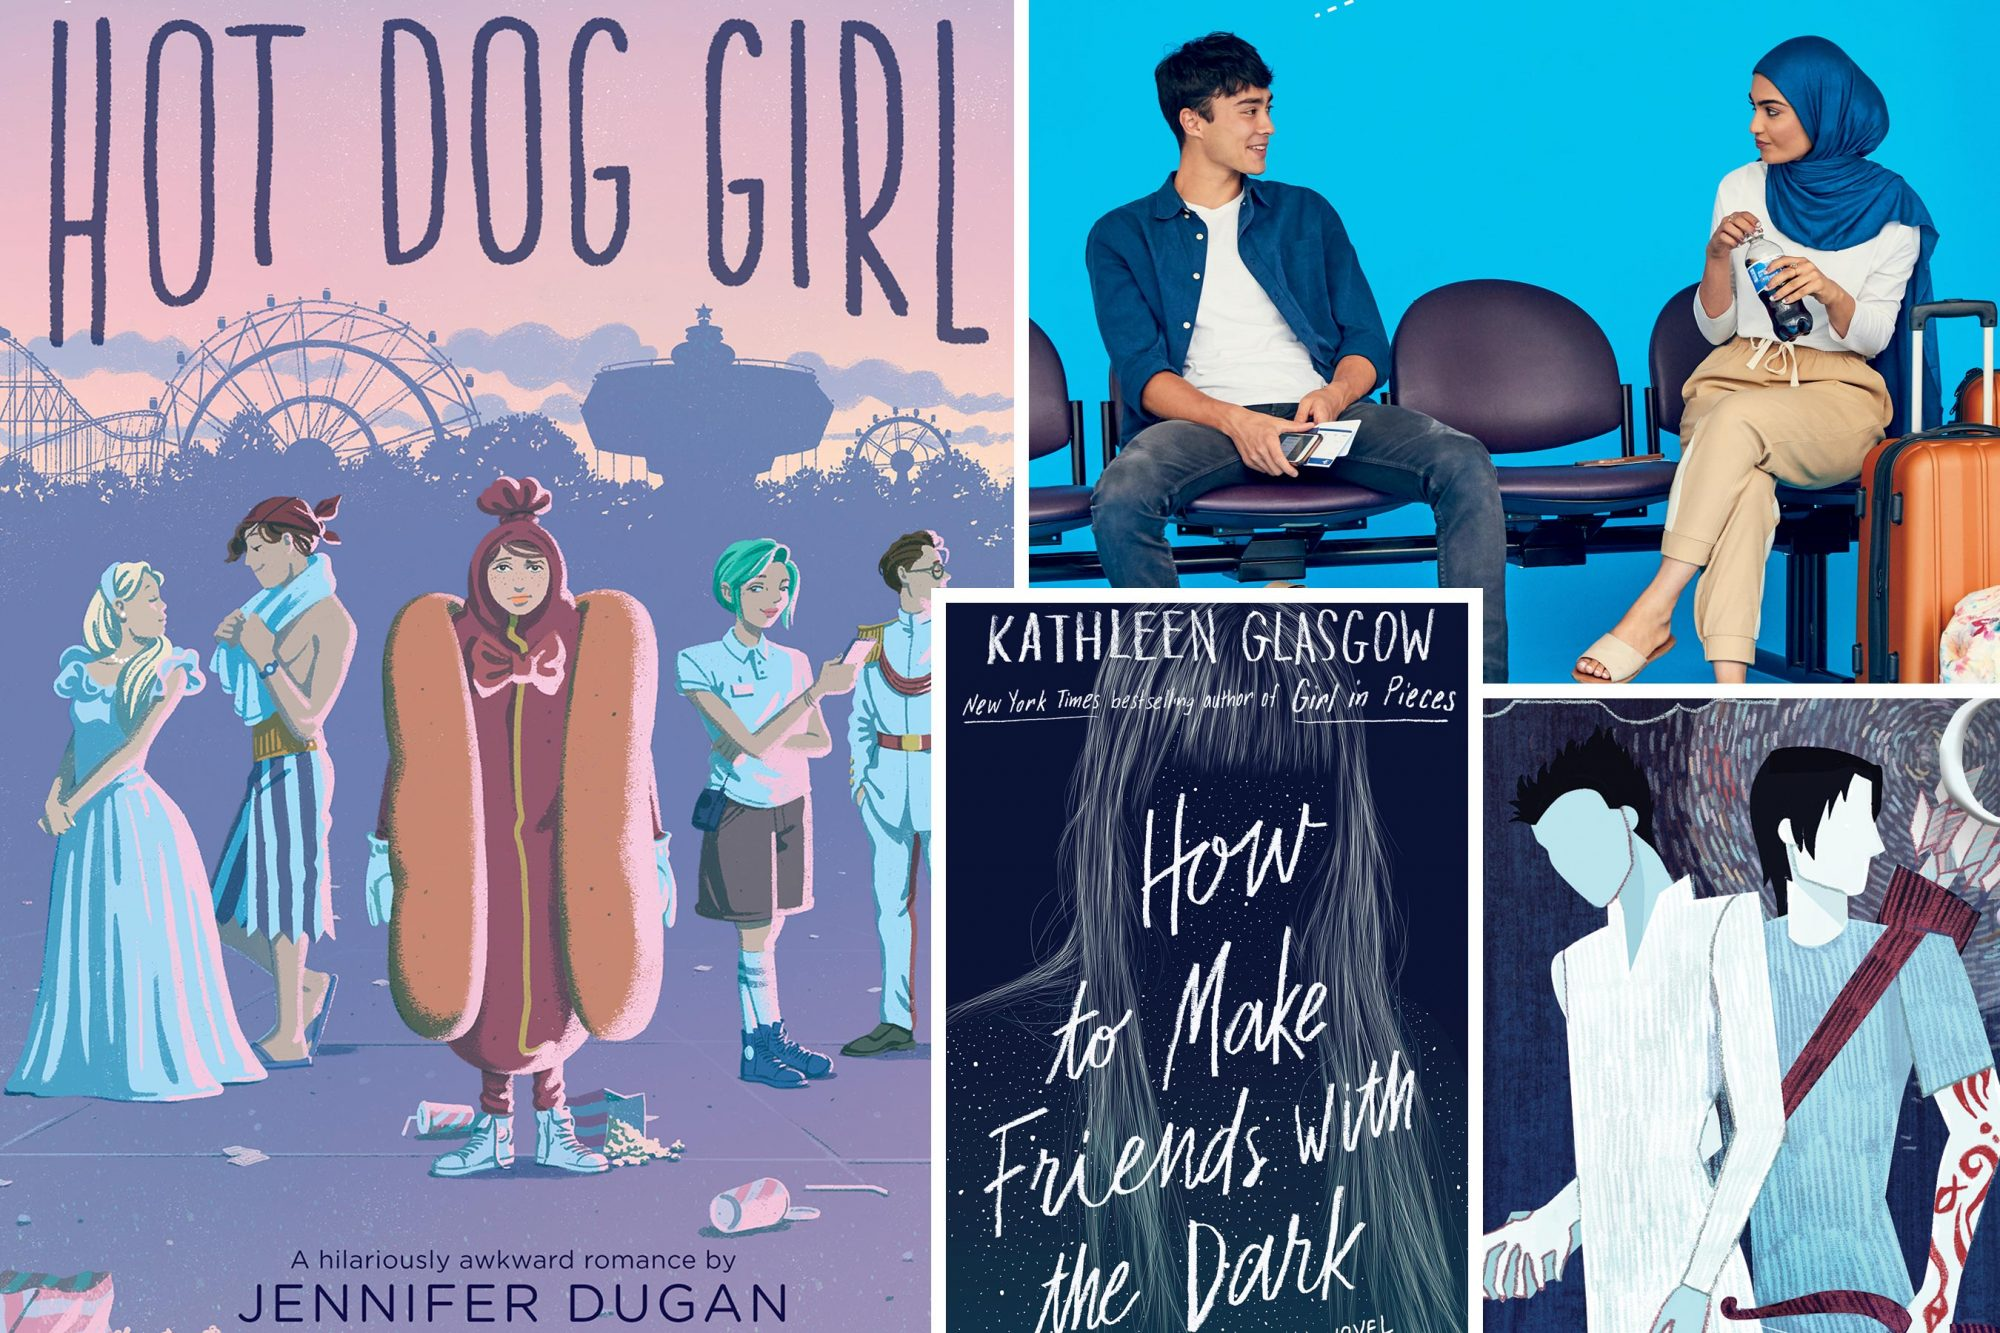 April YA Column Hot Dog Girl by Jennifer Dugan Love From A to Z by S.K. Ali How to Make Friends With the Dark by Kathleen Glasgow The Red Scrolls of Magic by Cassandra Clare and Wesley Chu